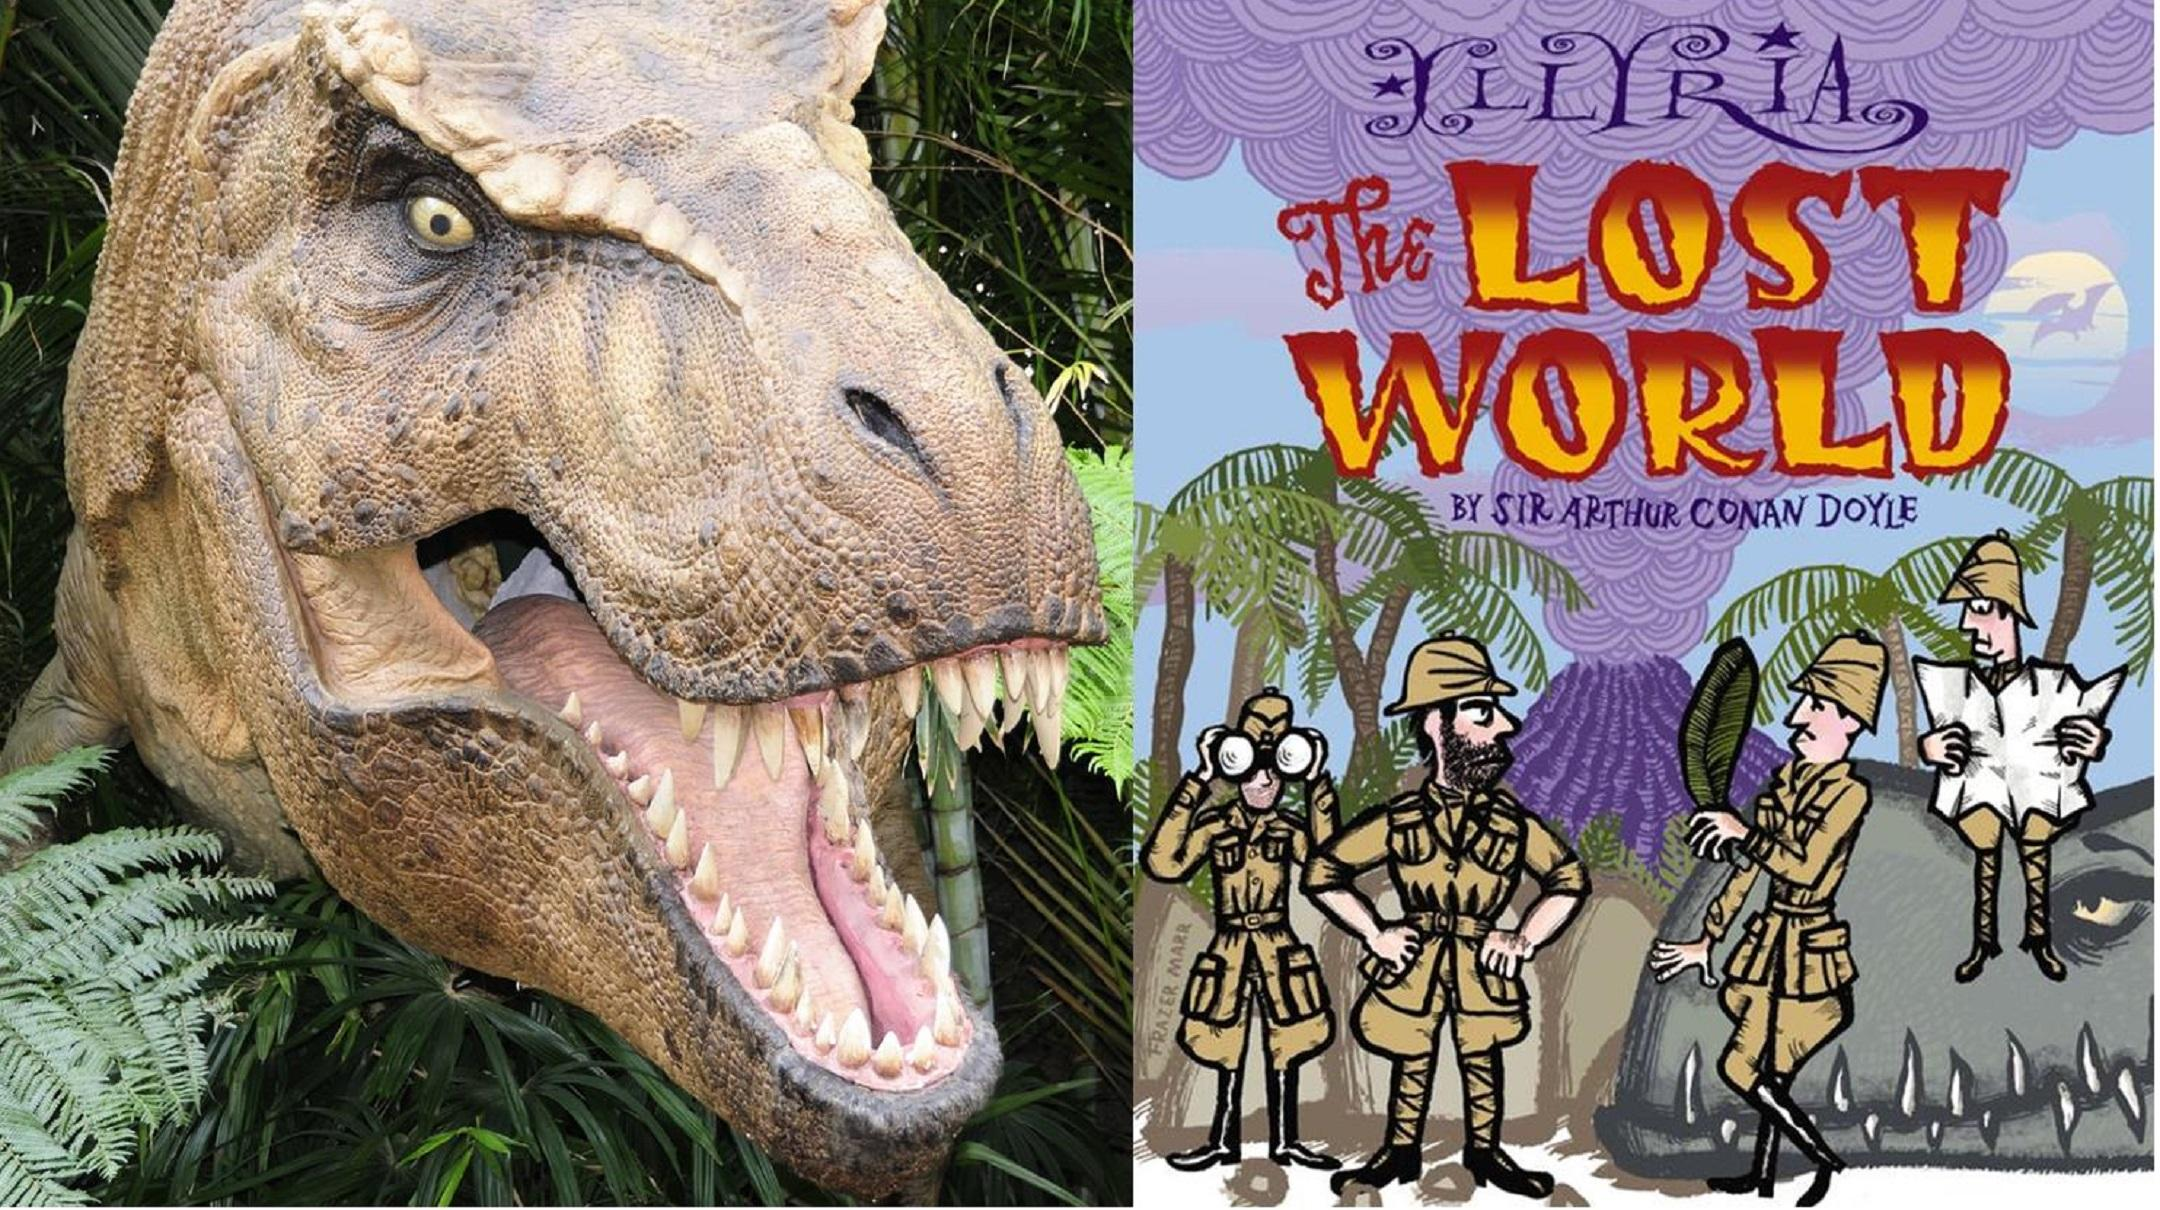 Outdoor Theatre: The Lost World! By Sir Arthur Conan Doyle